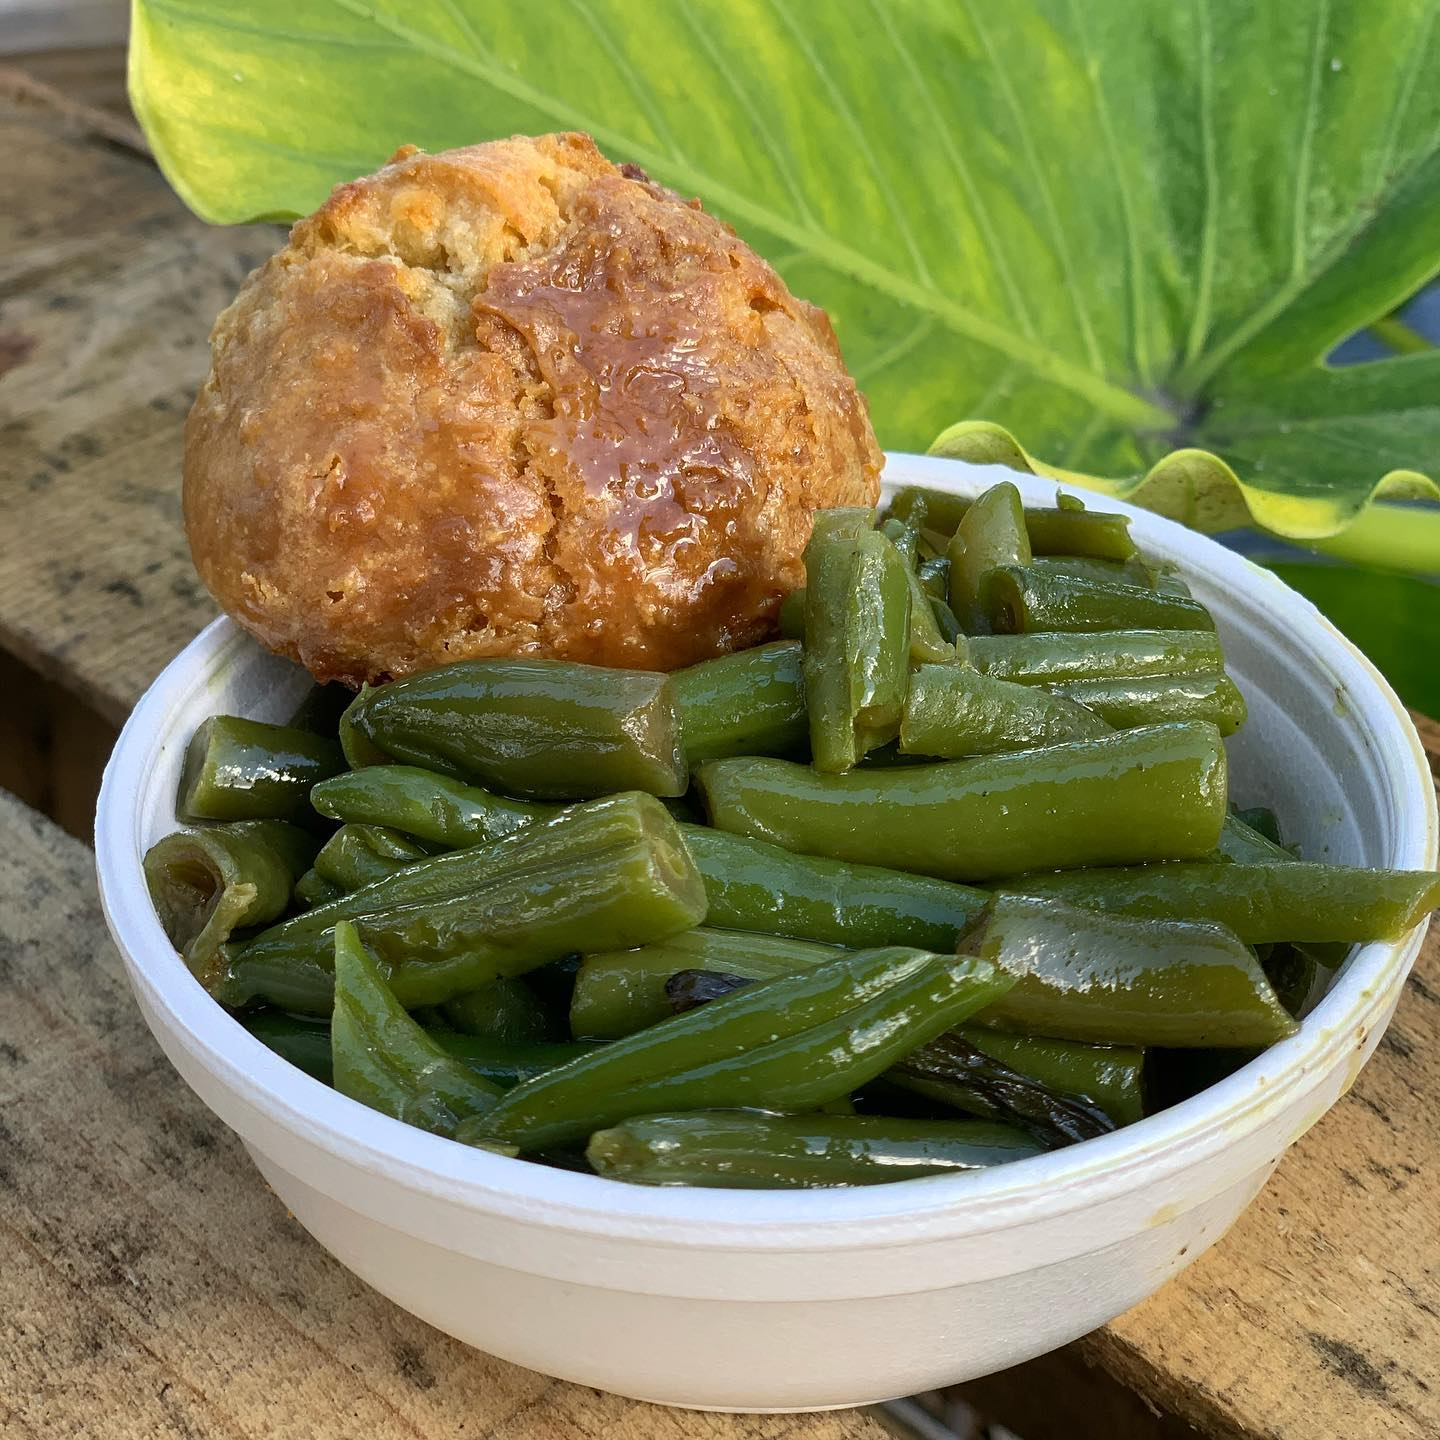 bowl of green beans with a biscuit